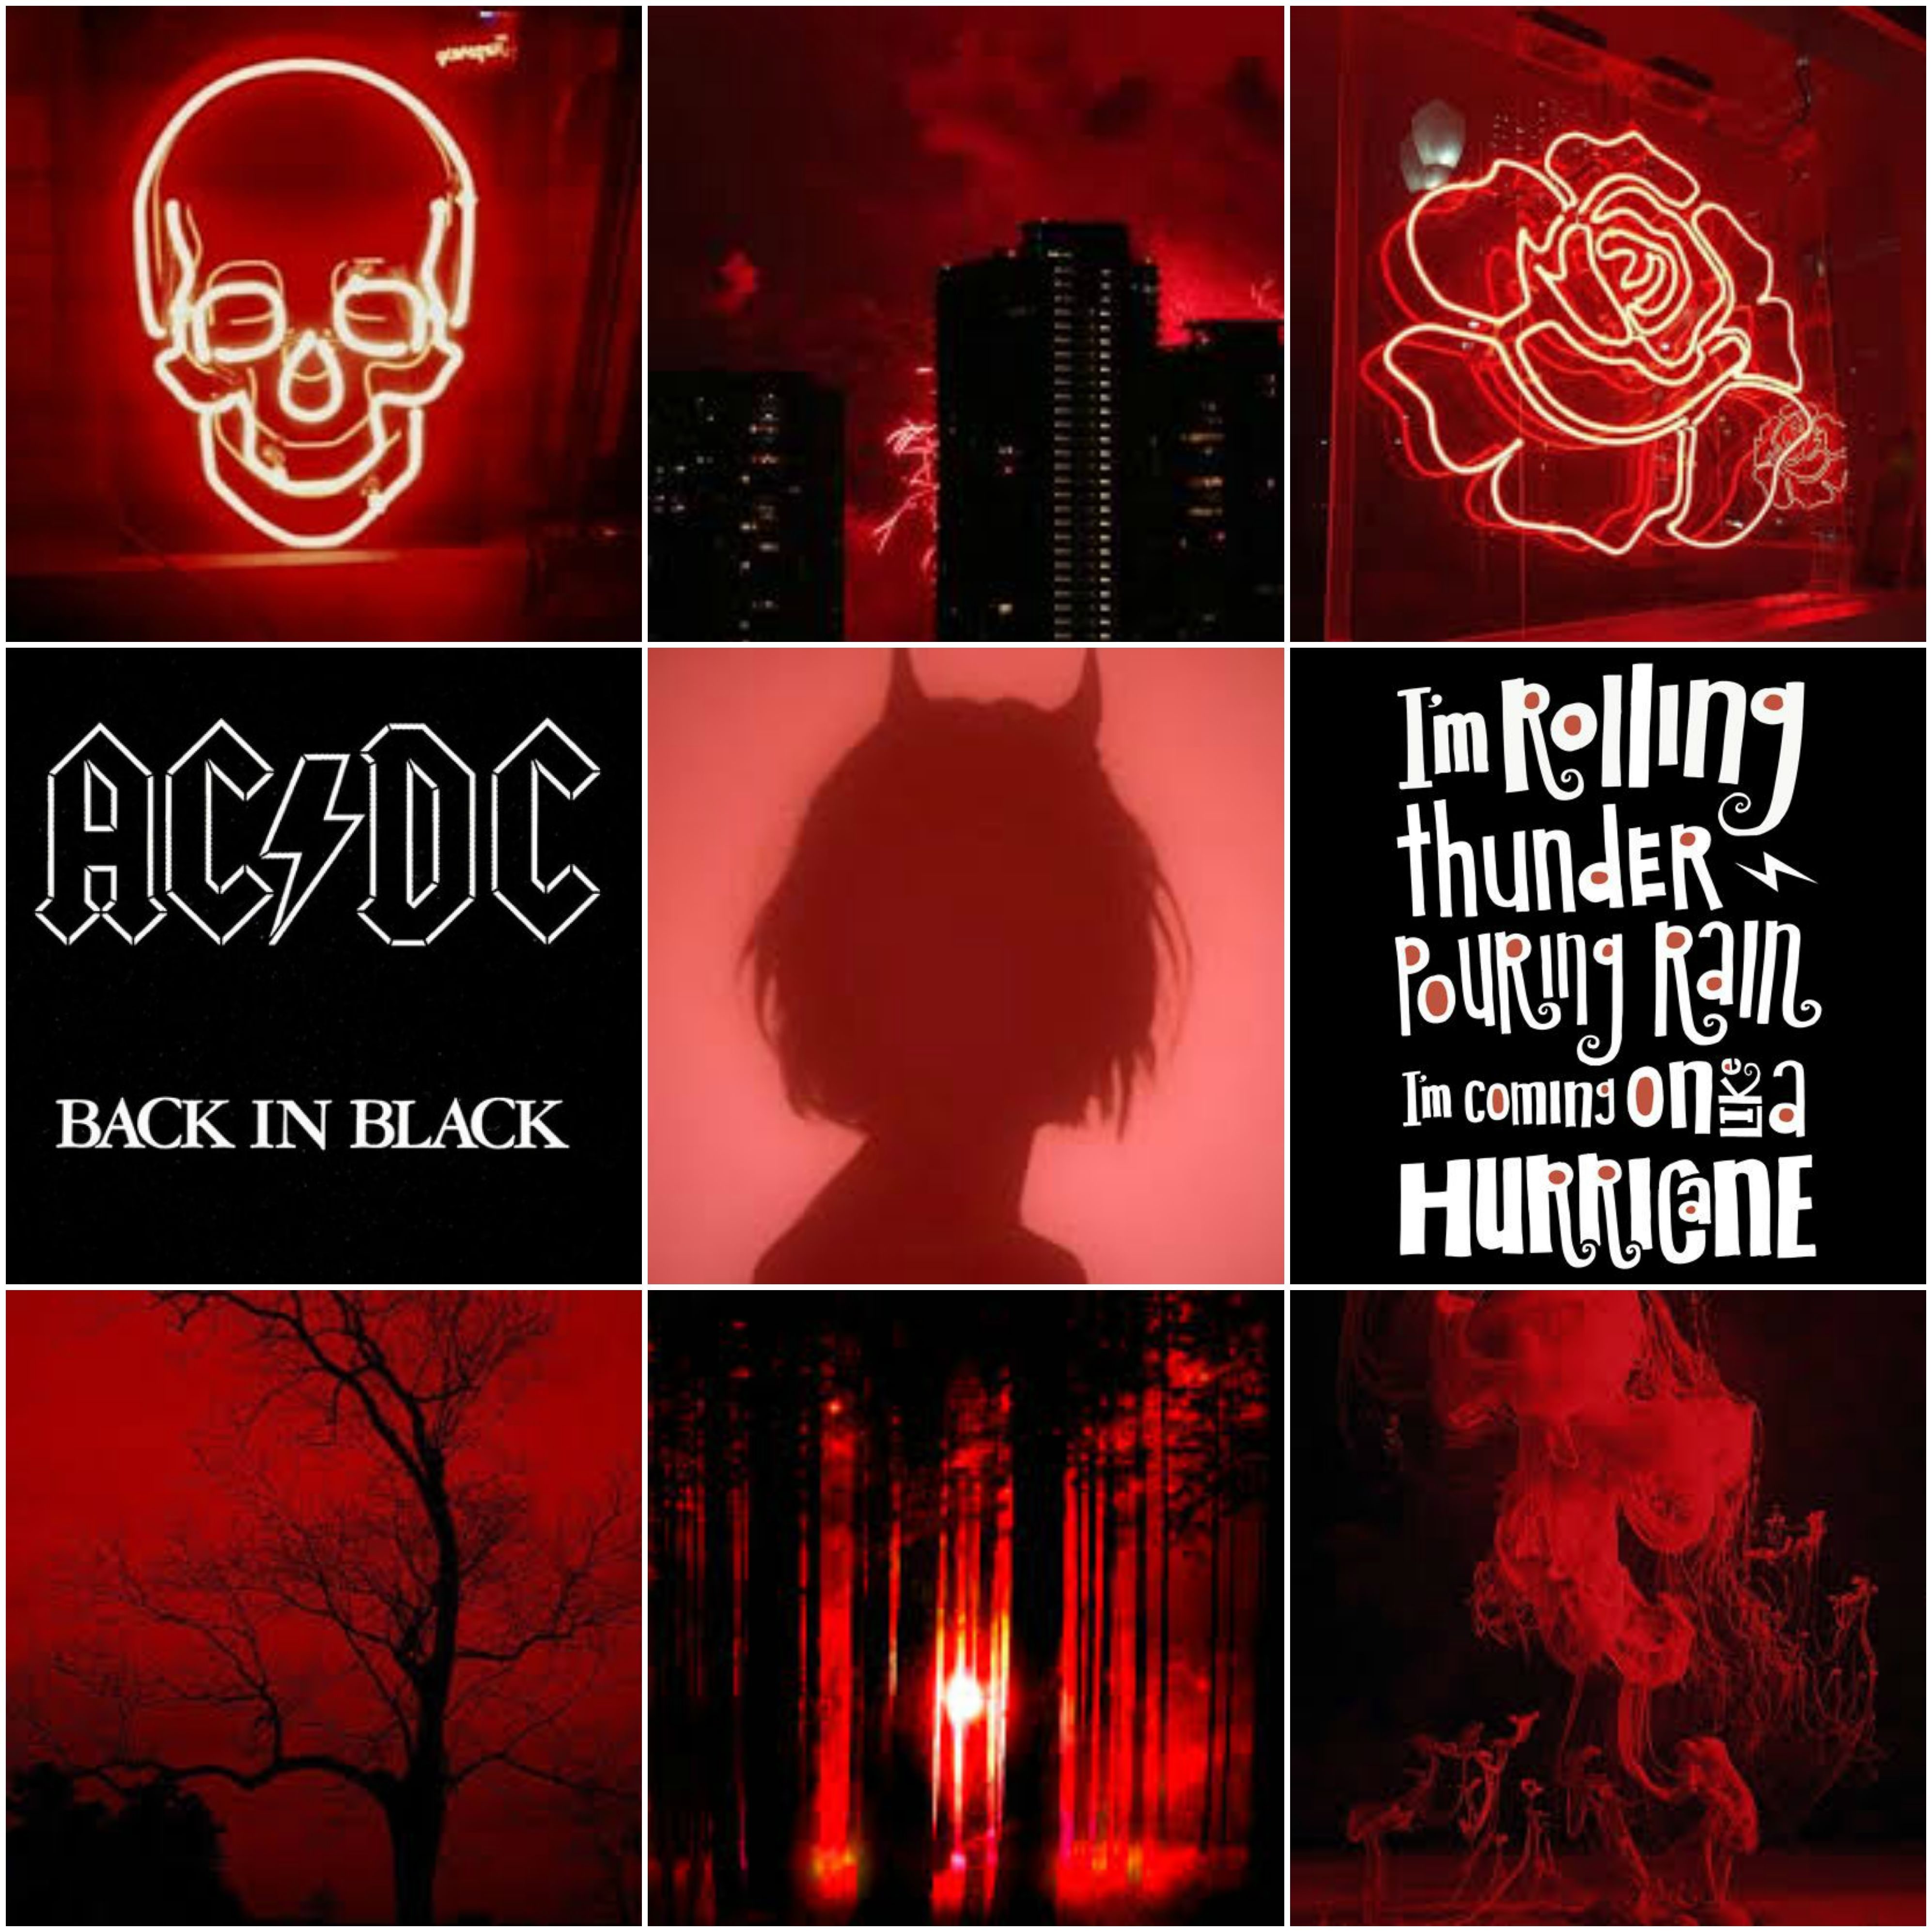 AC/DC Mood Board in 2020 Mood, Aesthetic colors, Emo love